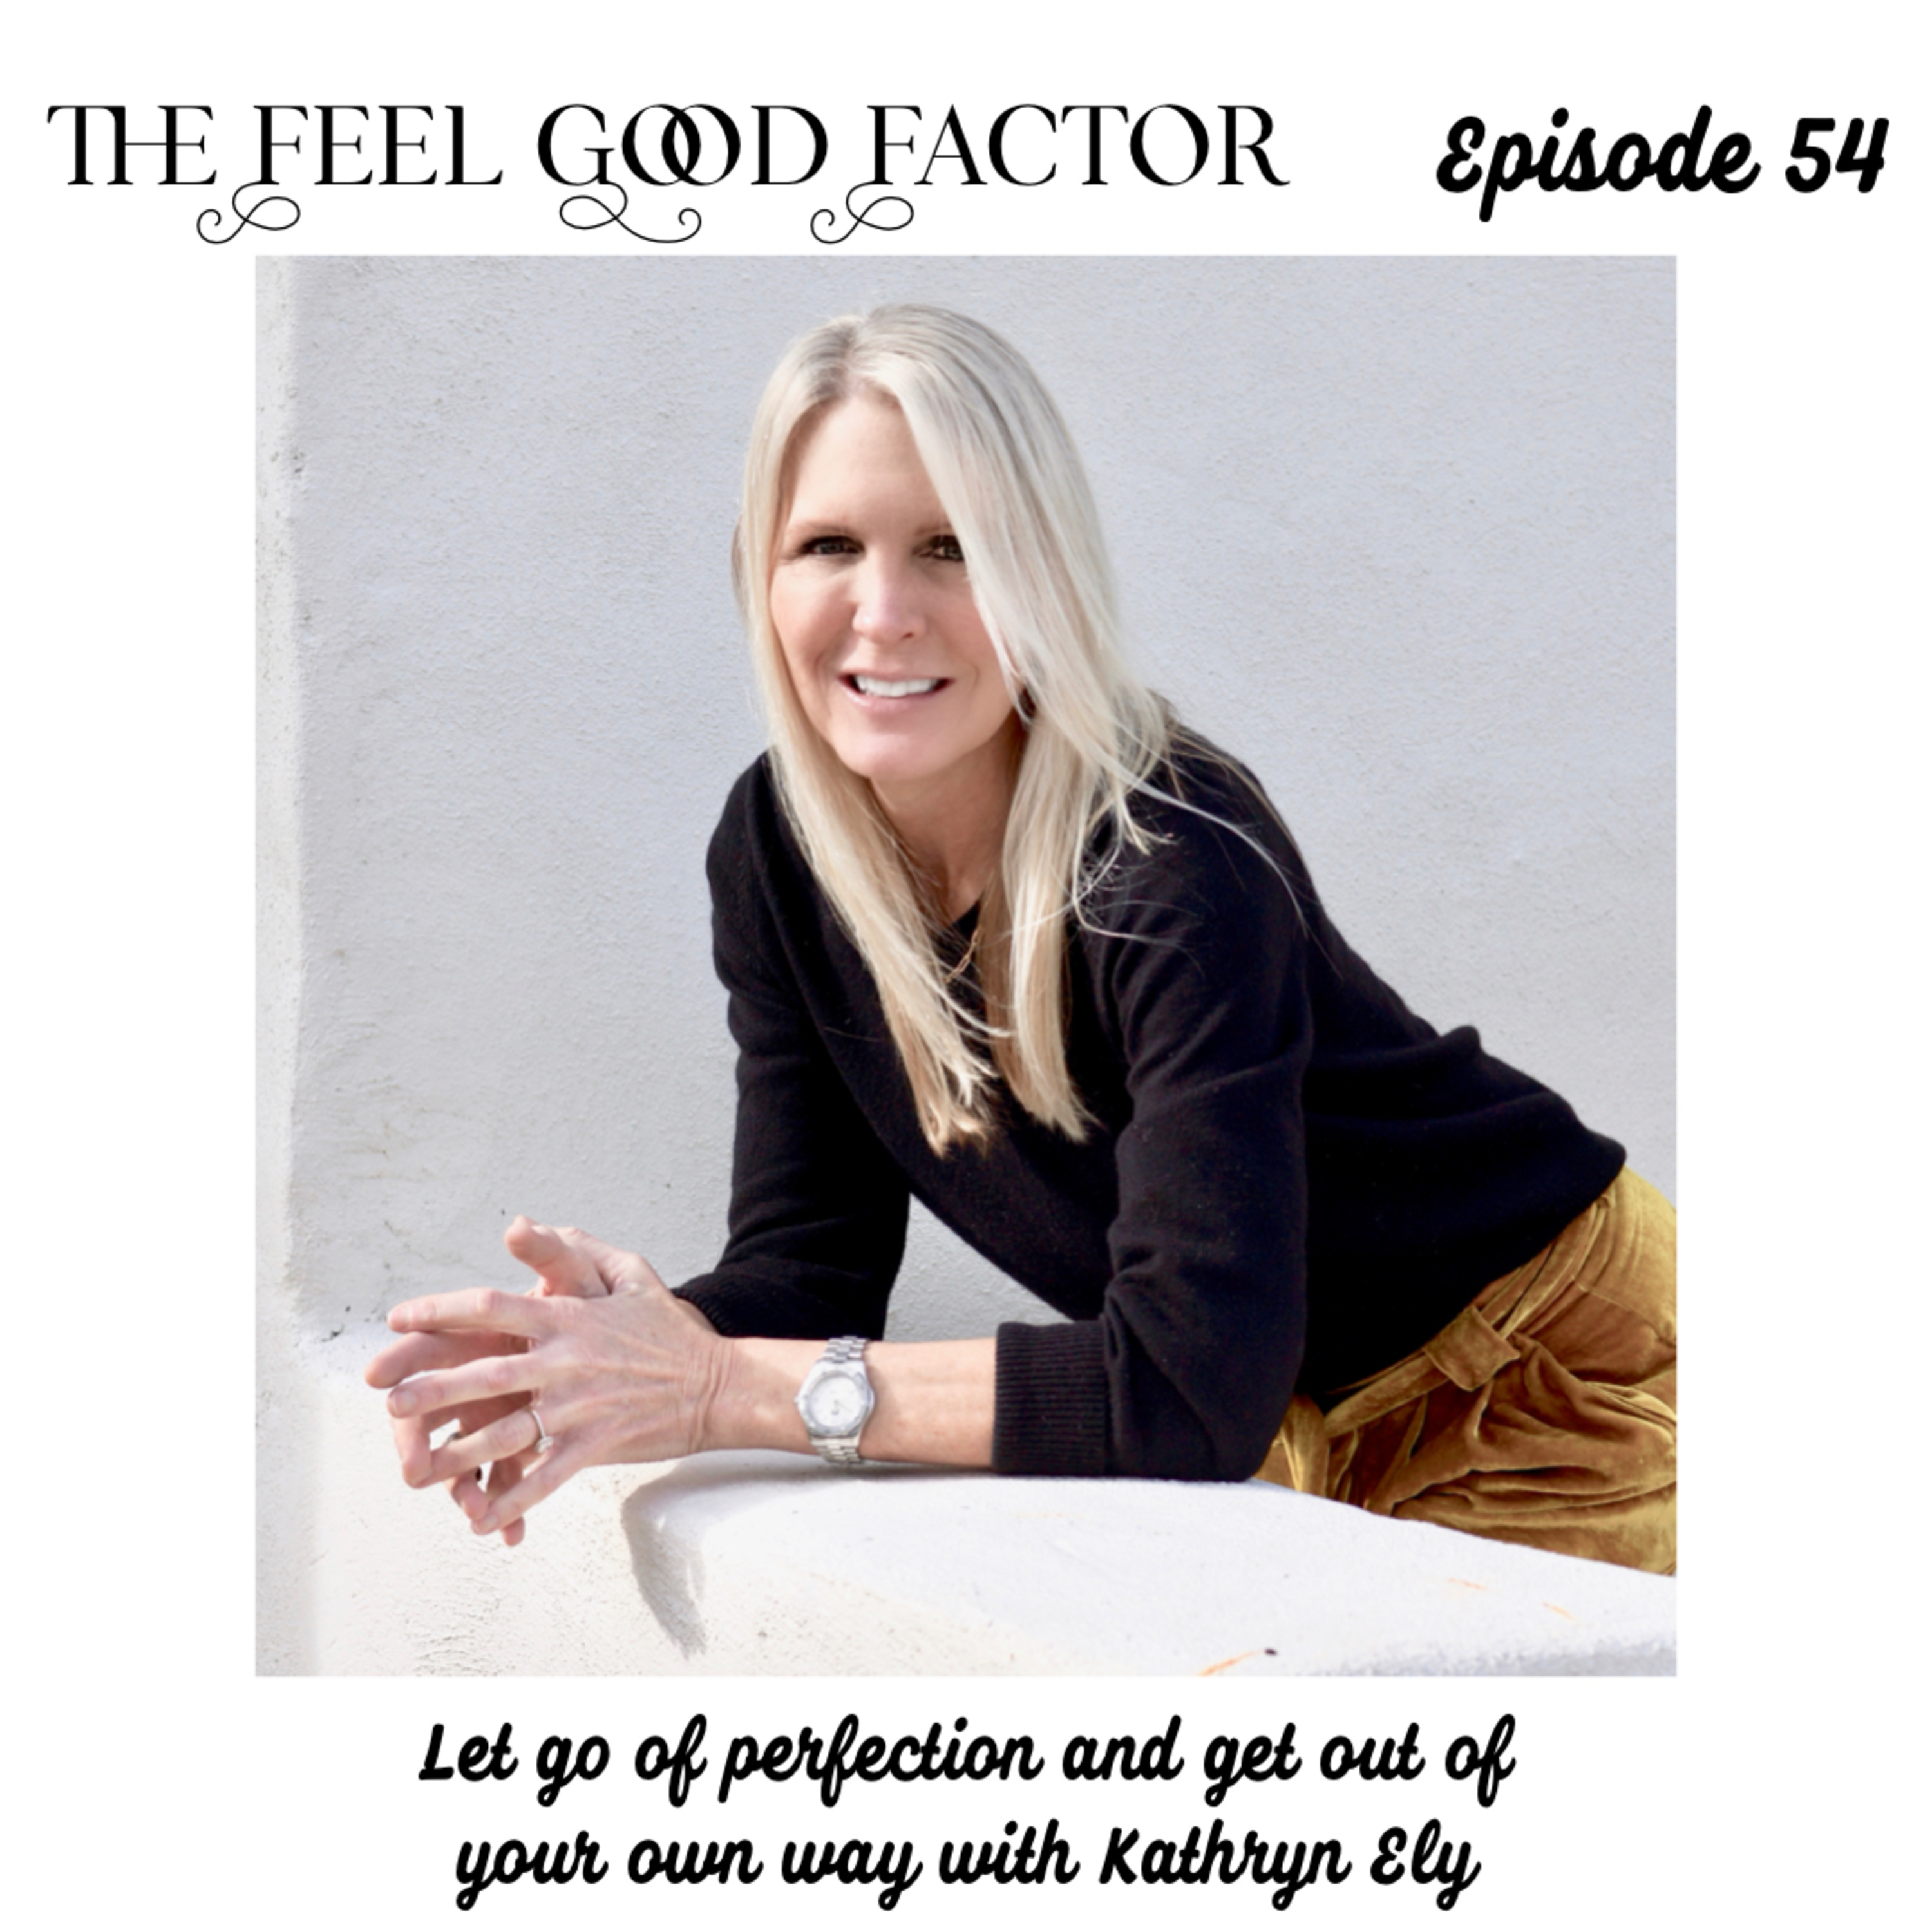 54: Let go of perfection and get out of your own way with Kathryn Ely